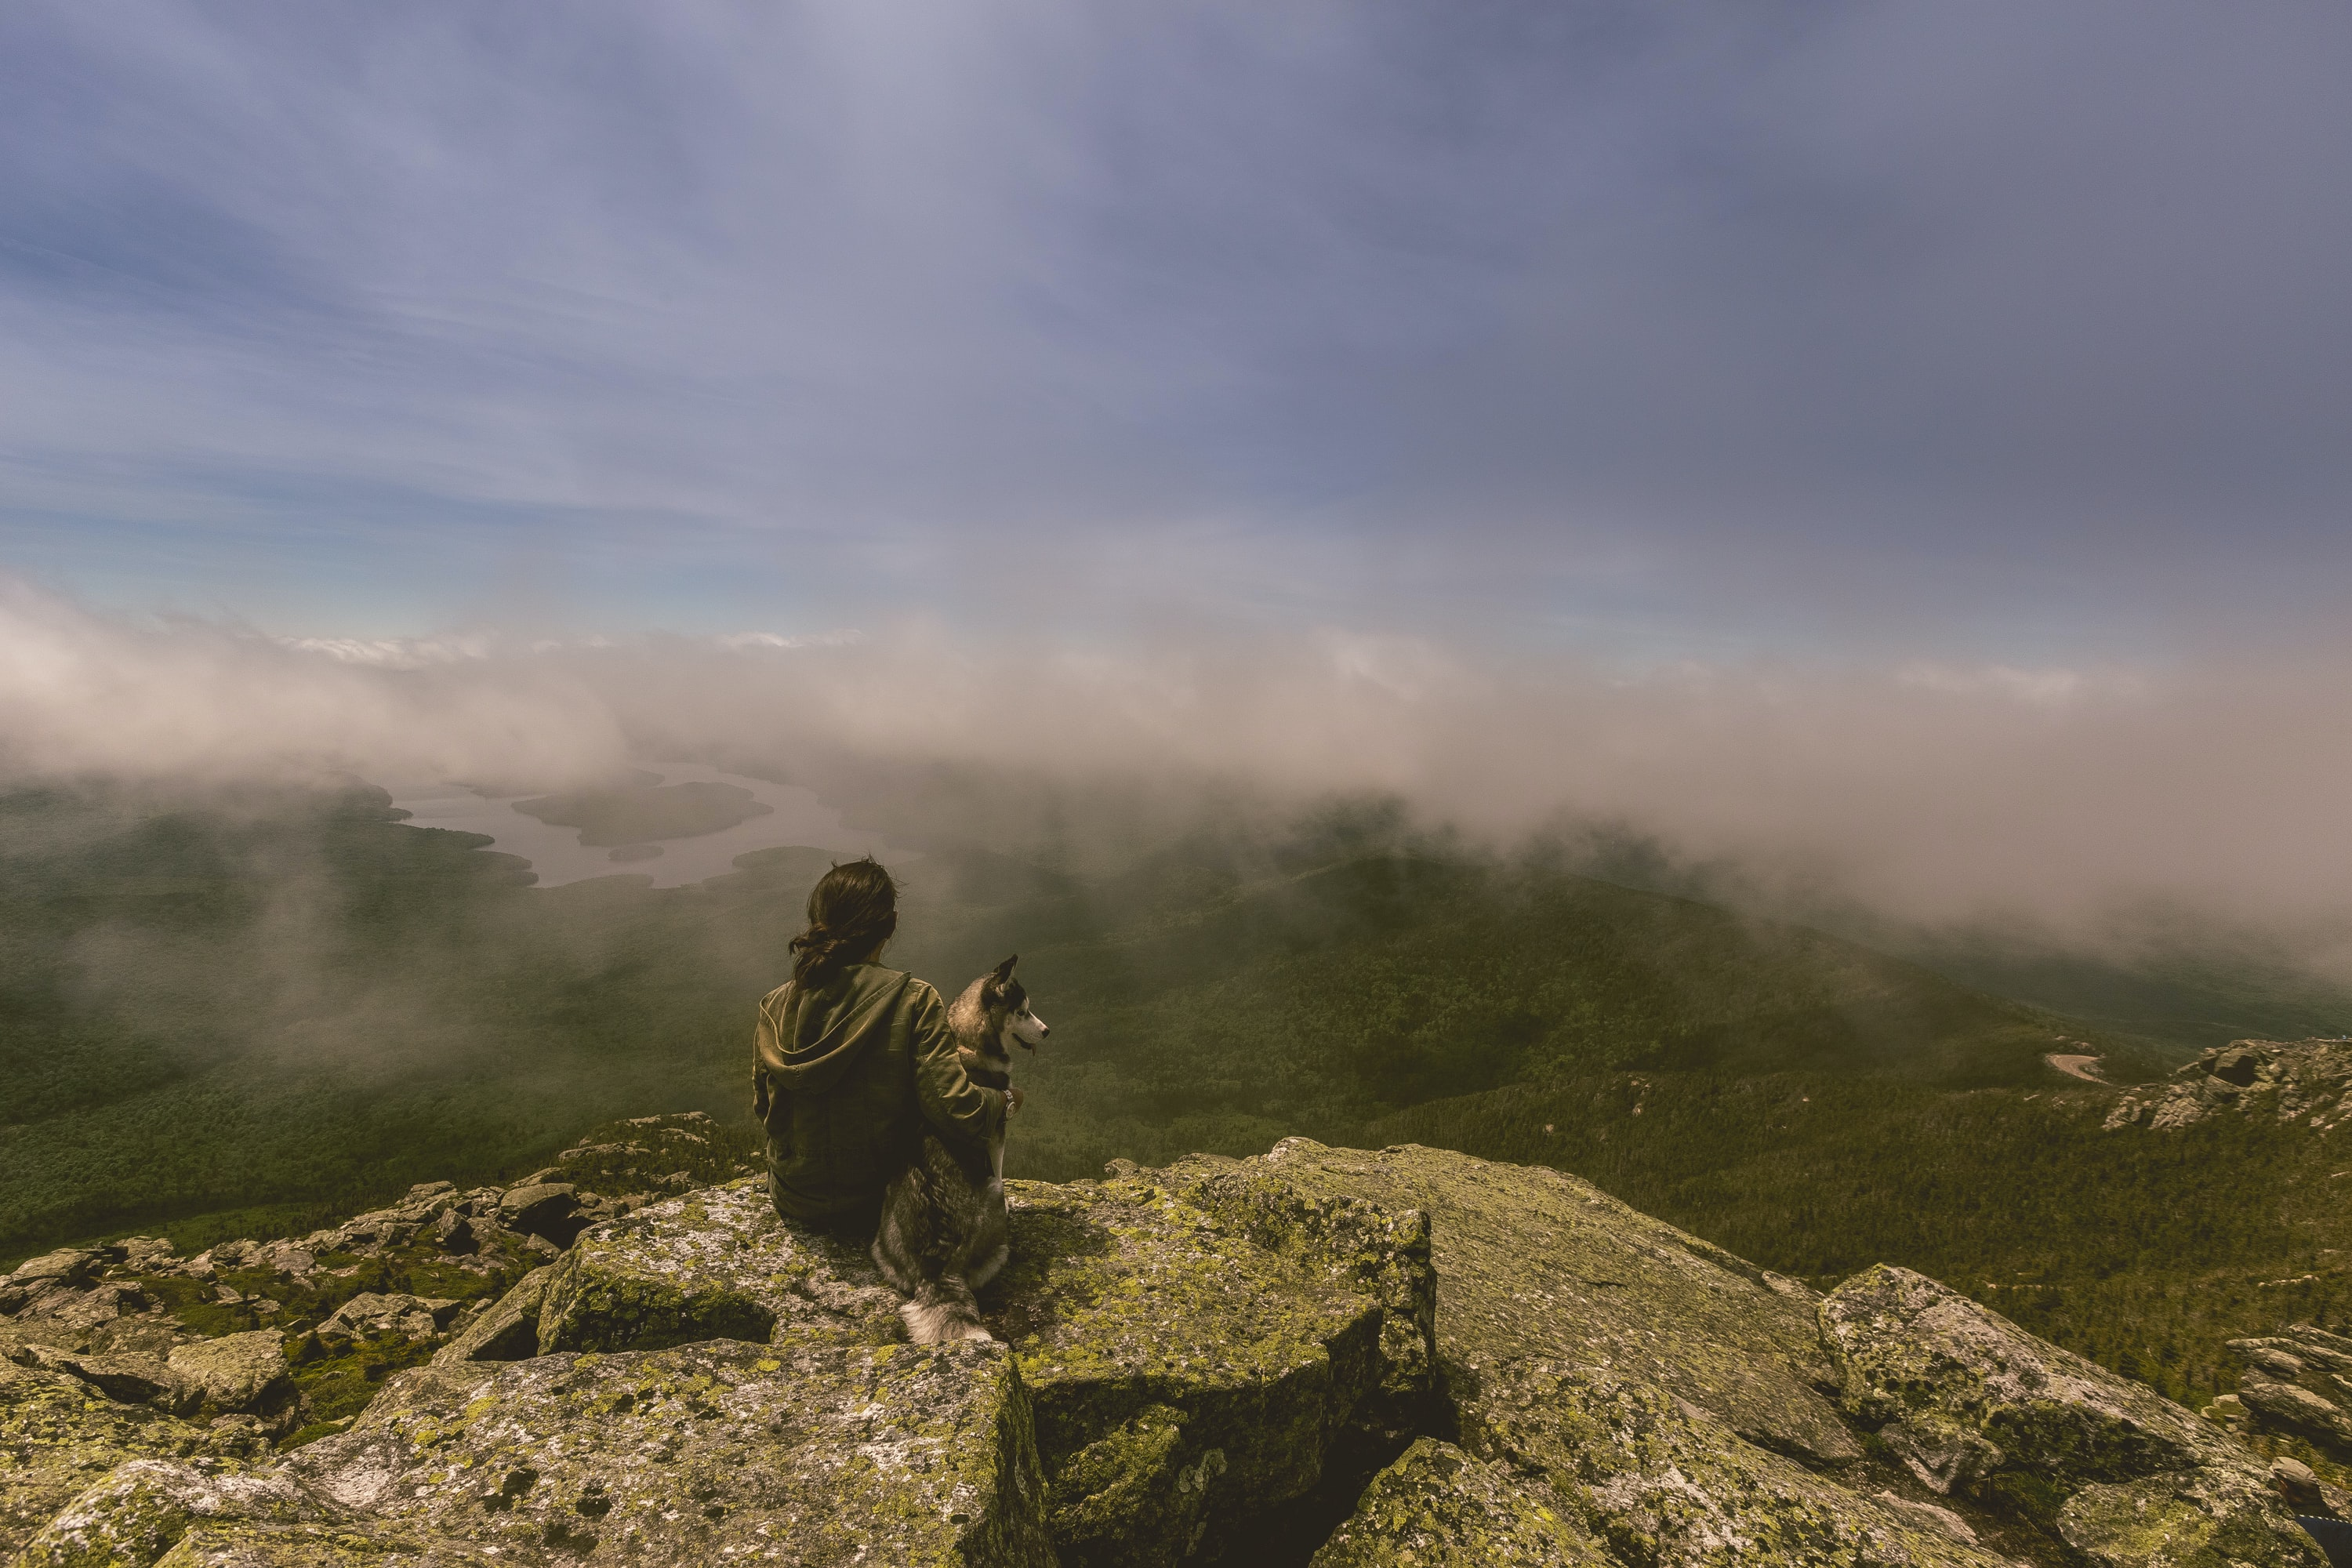 woman and dog sitting on gray concrete rock formation in front of mountain with fogs